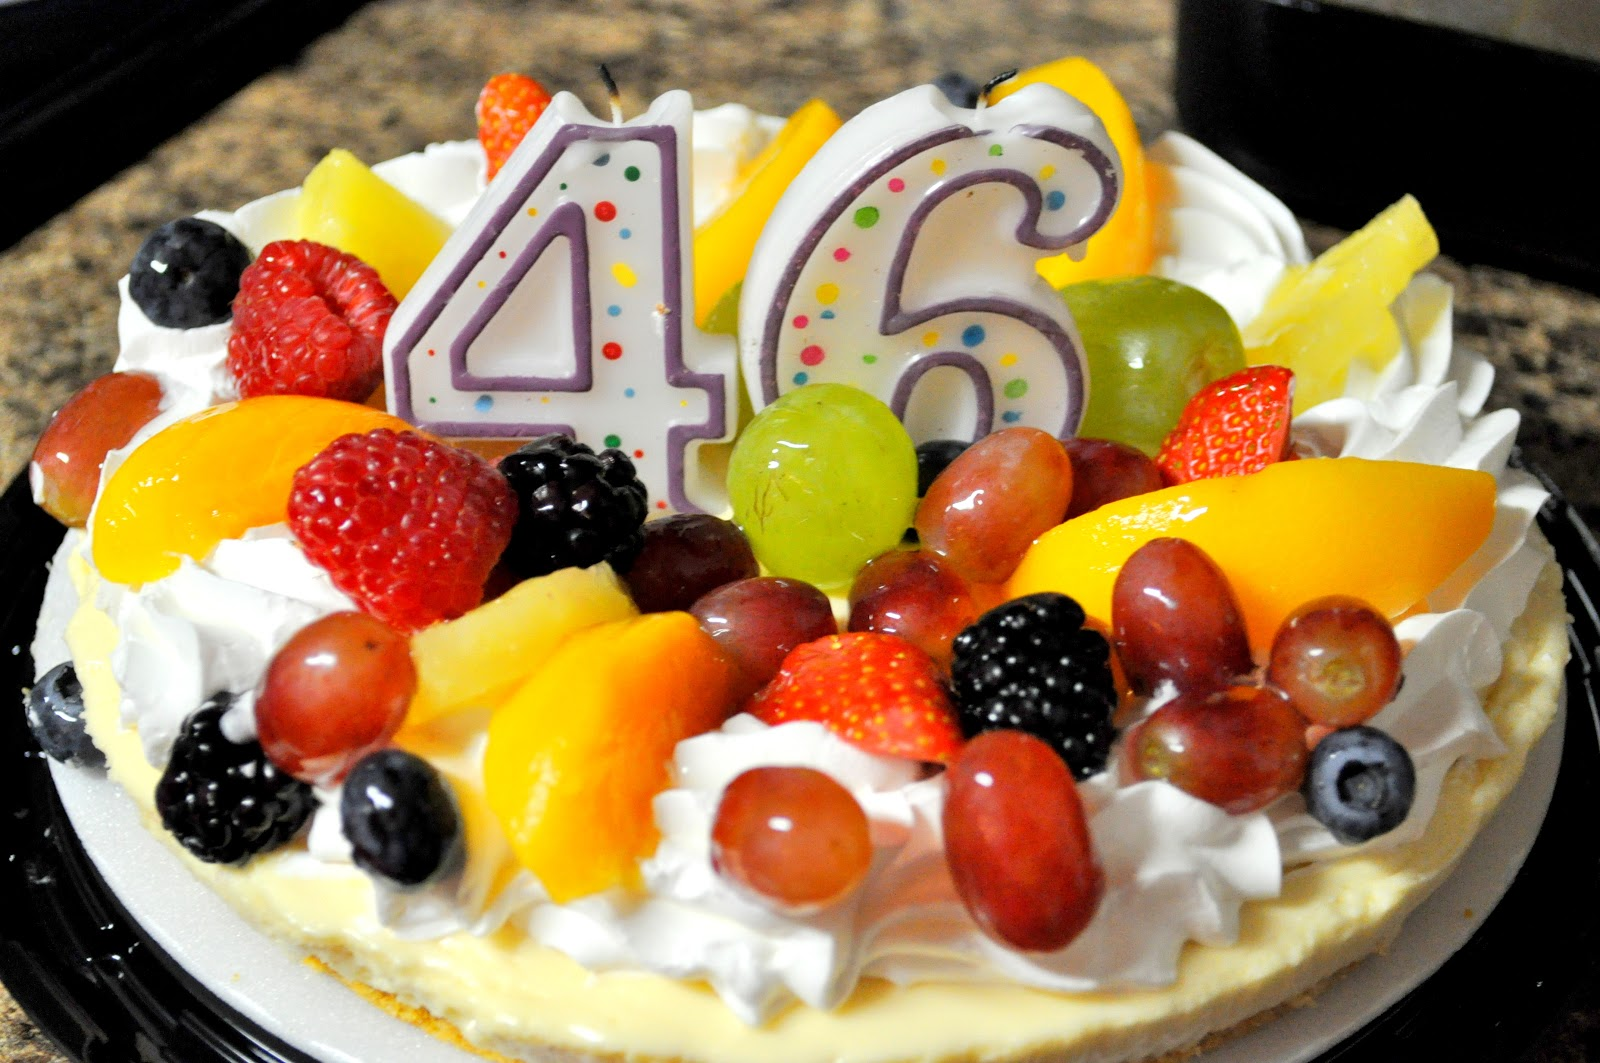 Life's Perception & Inspiration: Hubby's 46th Birthday